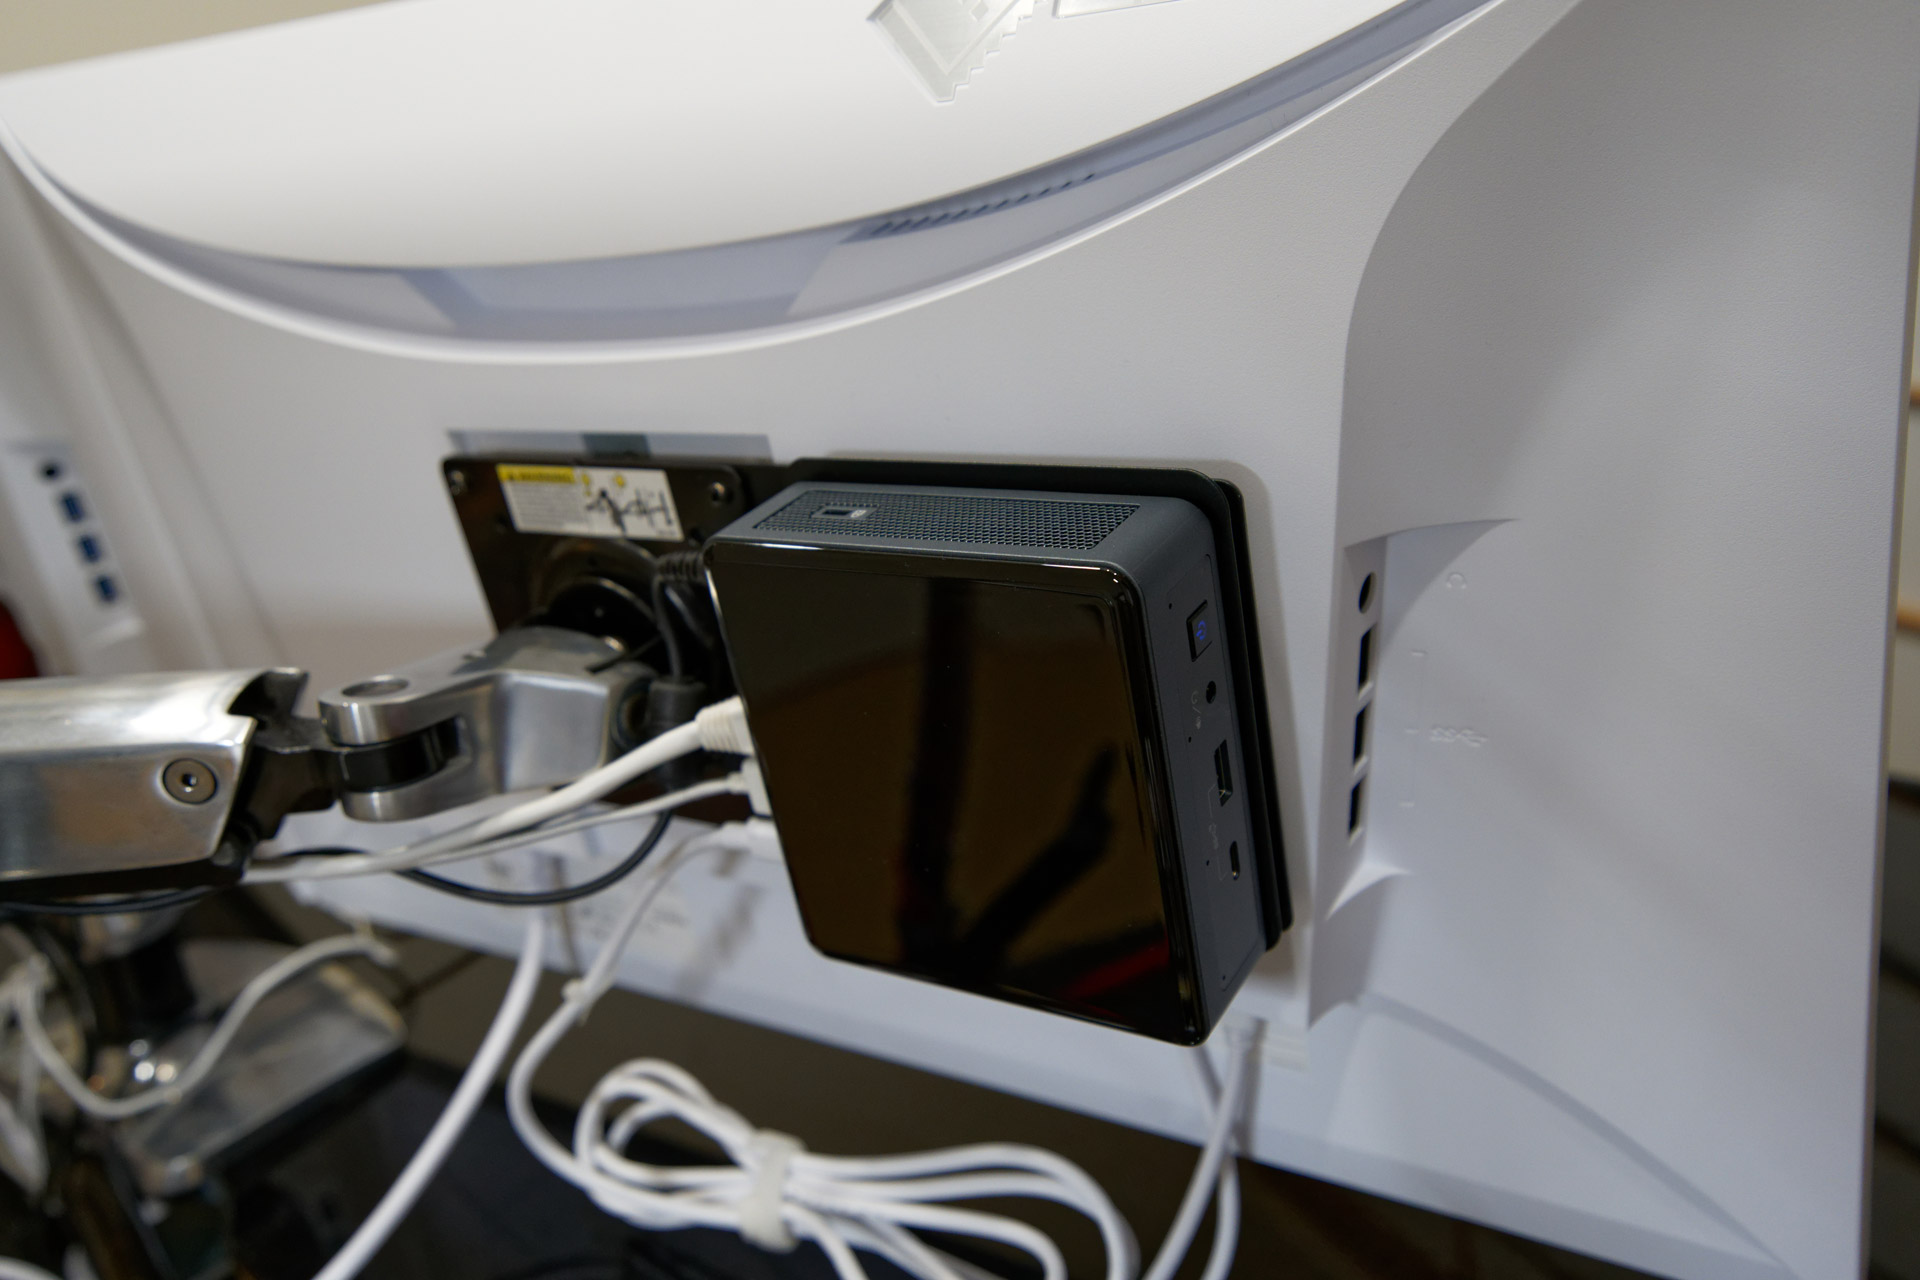 DisplayPort Alt Mode compatible Intel NUC on a bracket attached to the monitor.